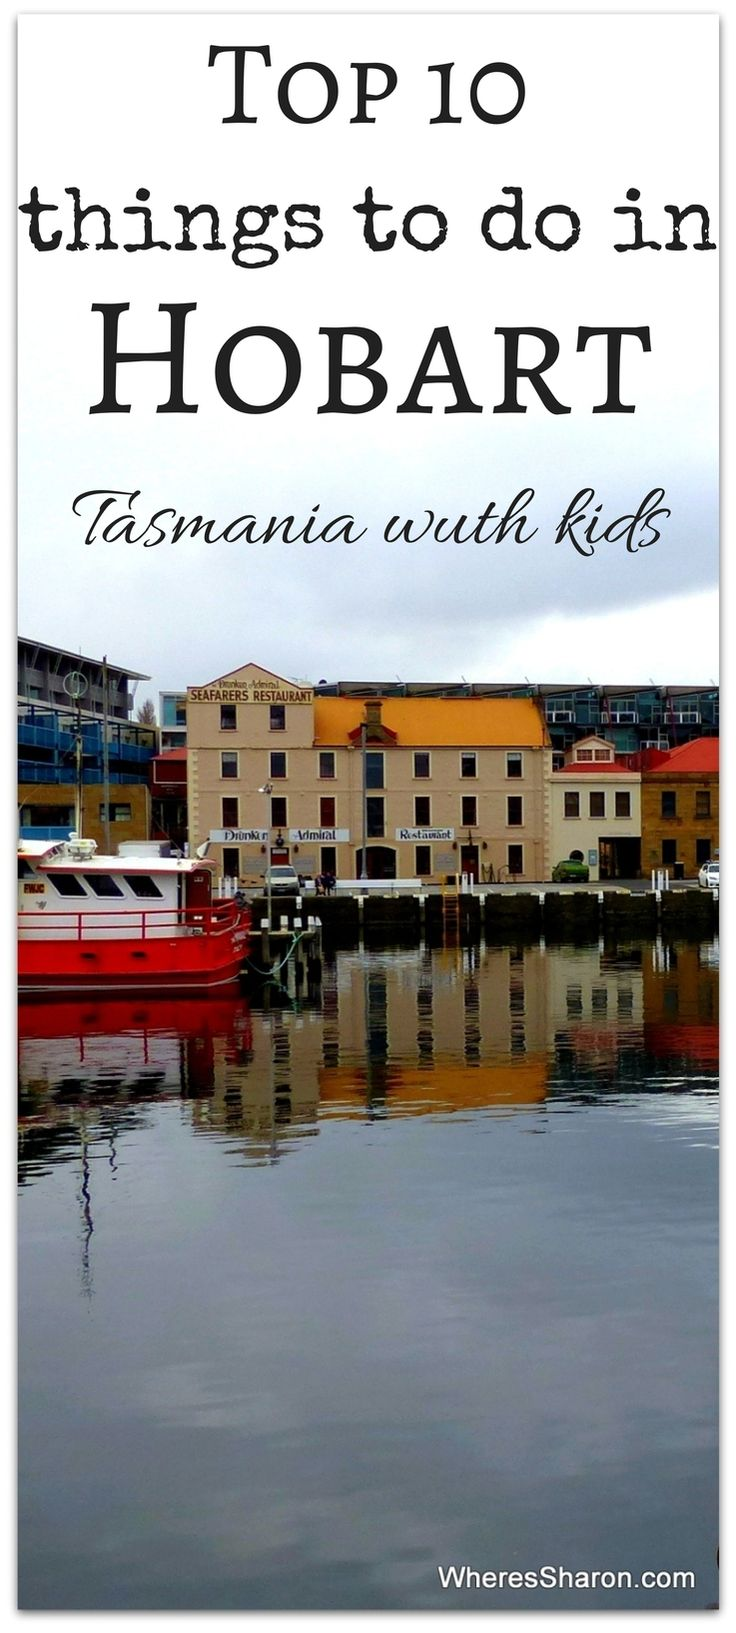 Top 10 things to do in Hobart, Tasmania with kids